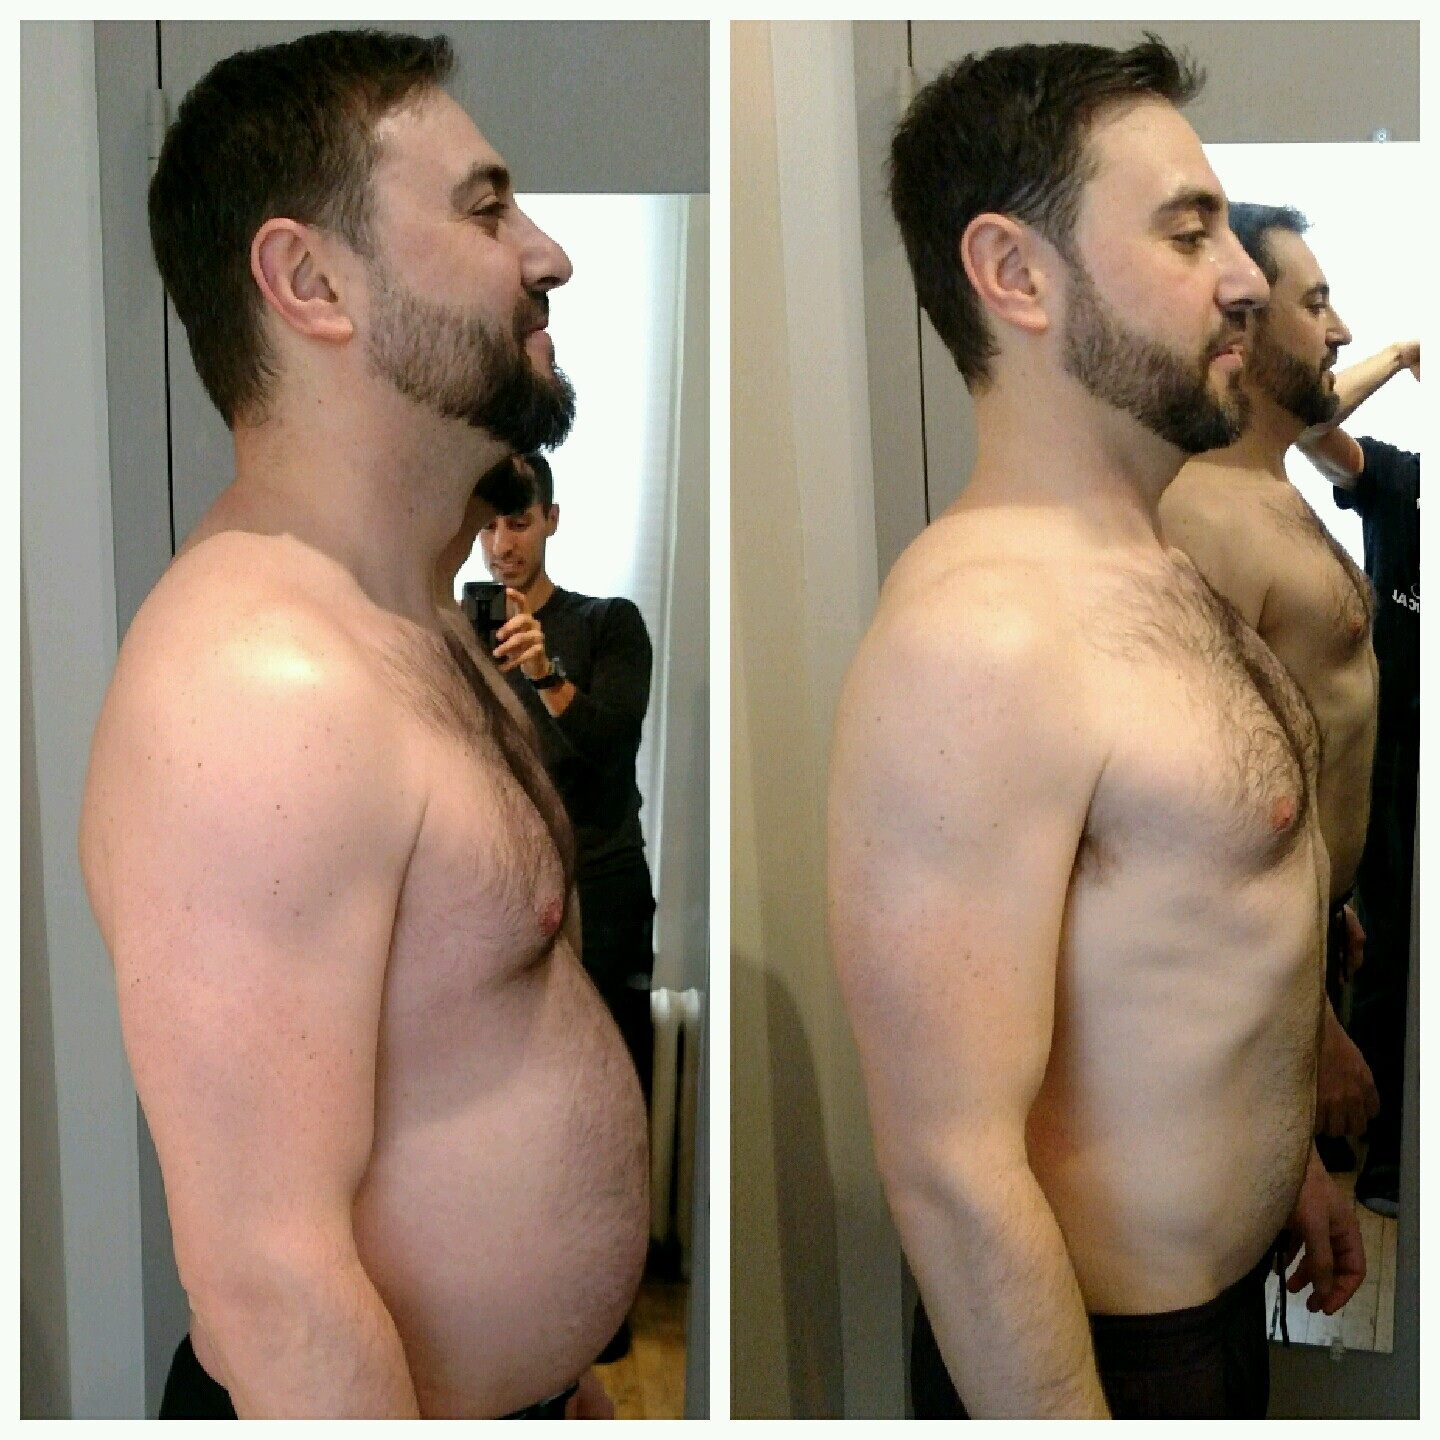 """David lost 27 lbs in 10 weeks on the """"Primal Shred"""" program, and has kept it off for over 2 years!"""